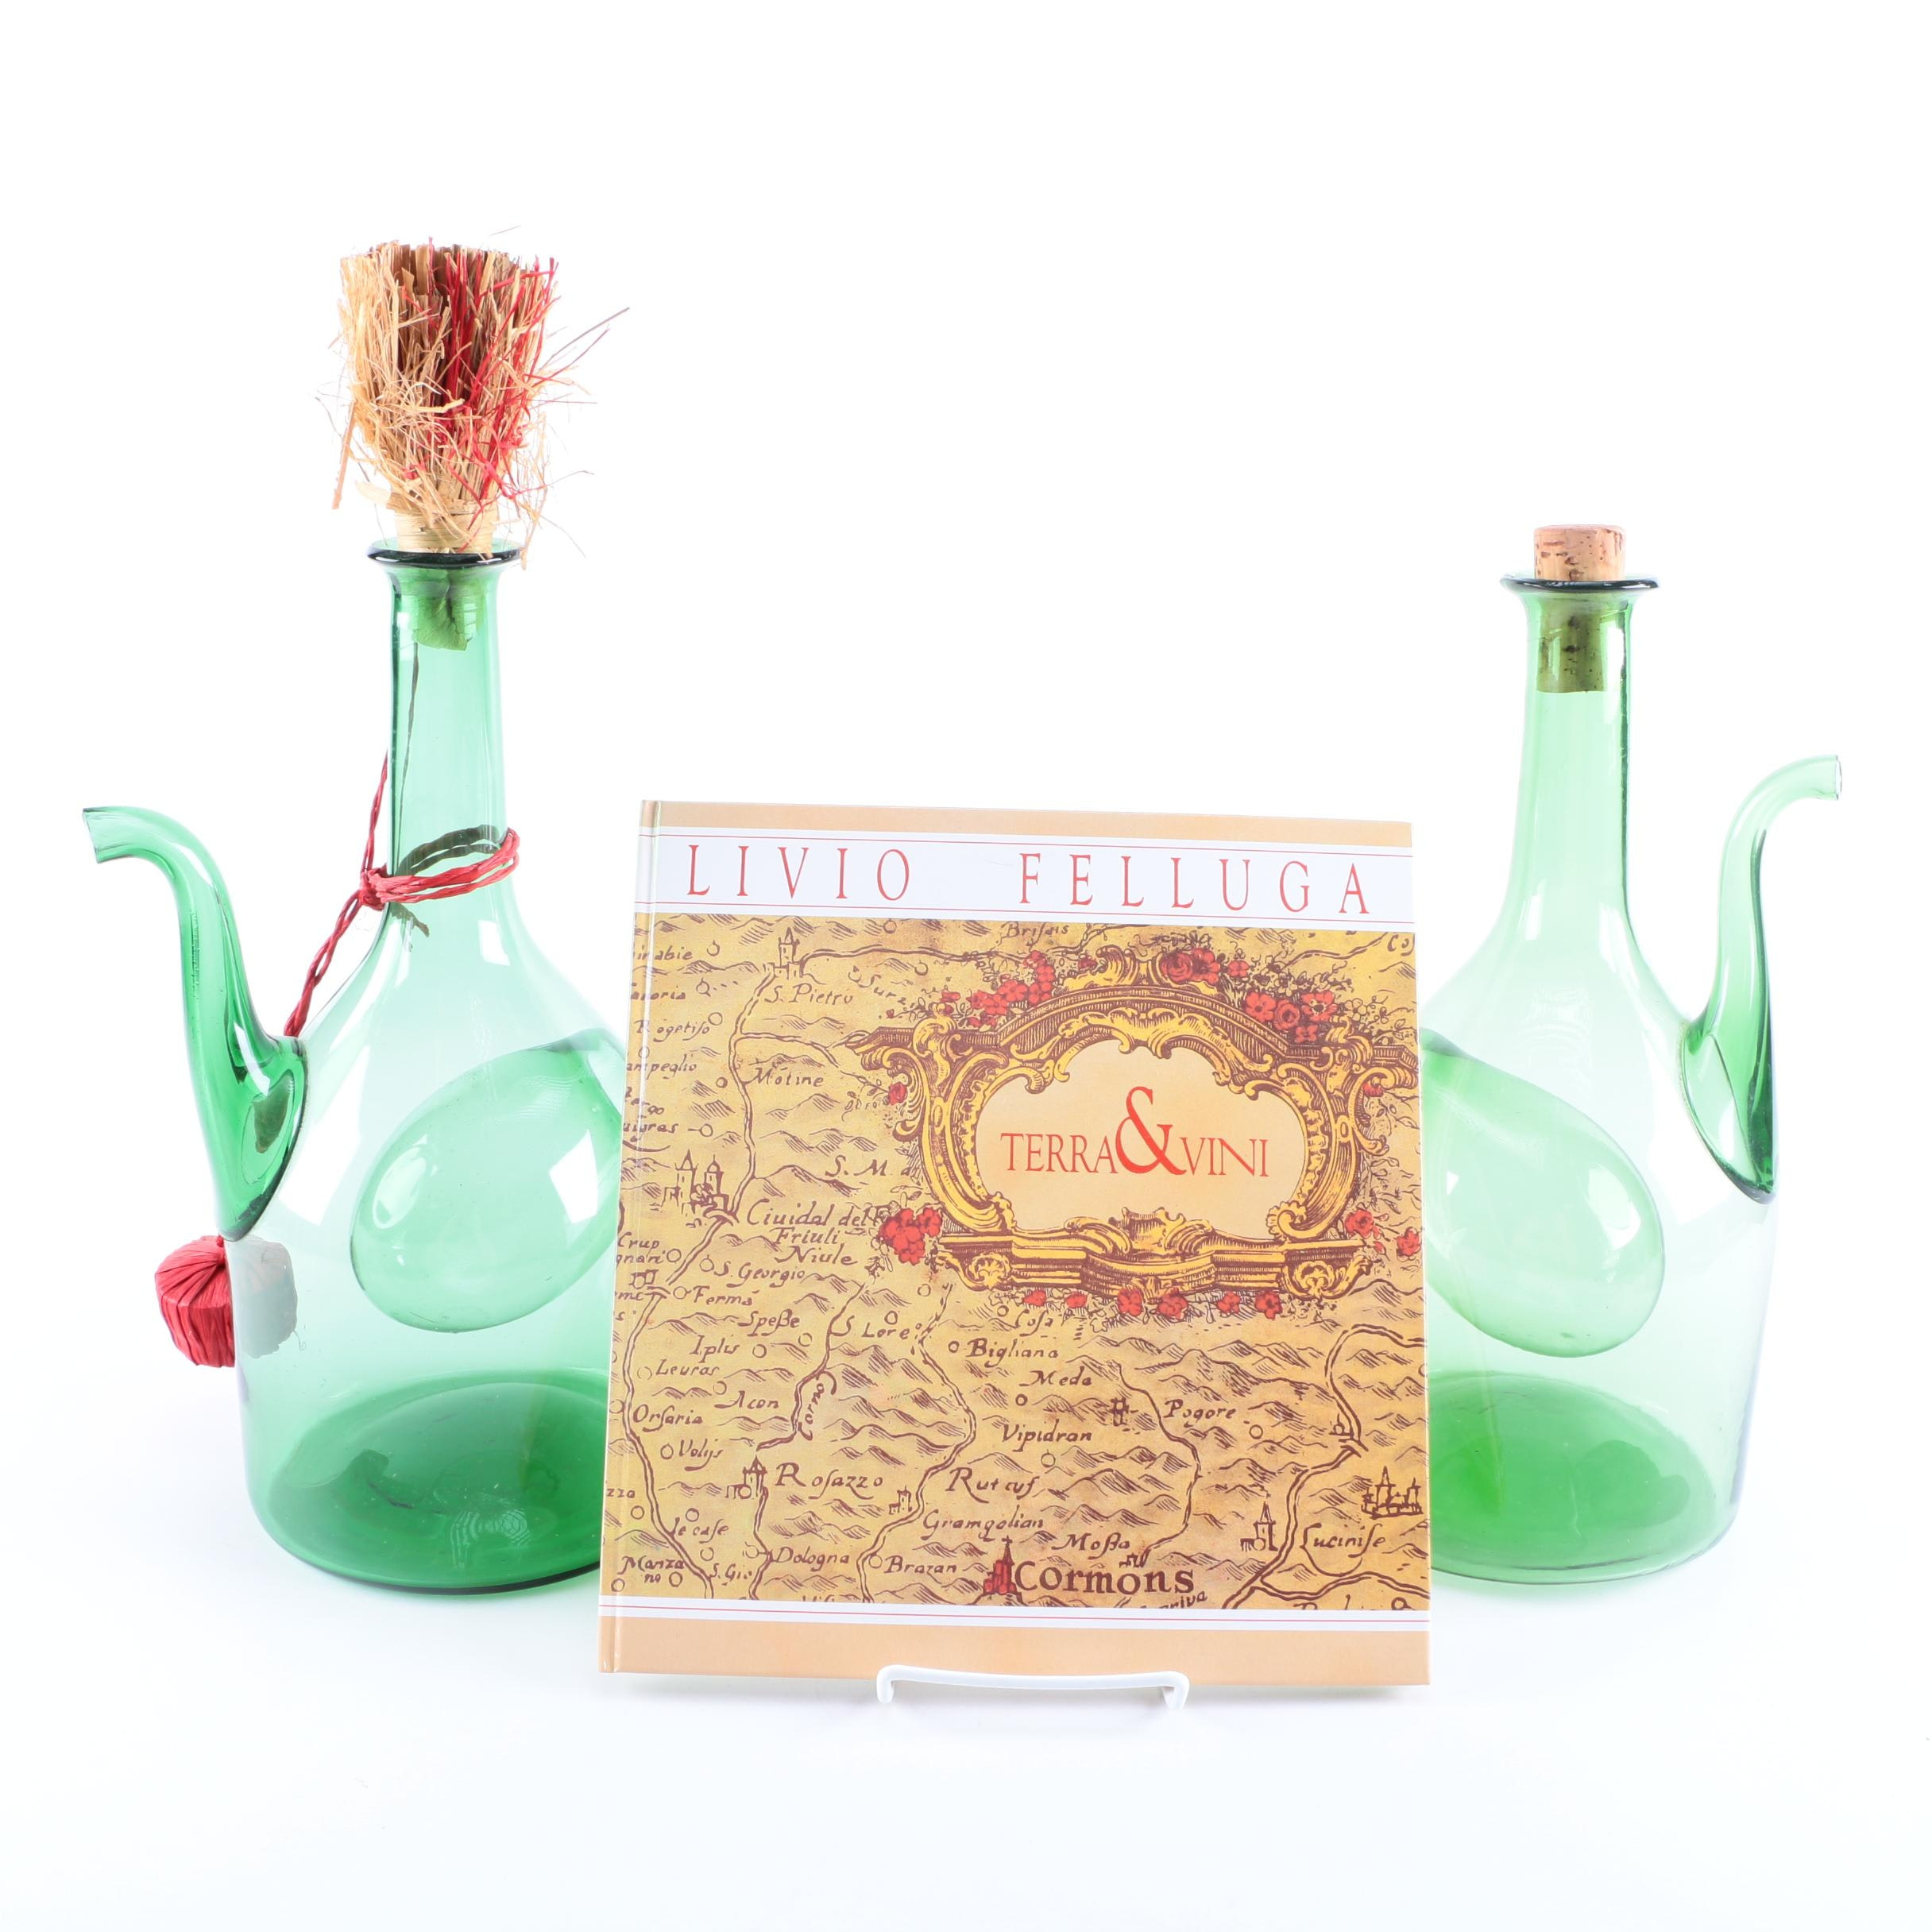 Hand-Blown Green Glass Wine Decanters and Italian Wine Book